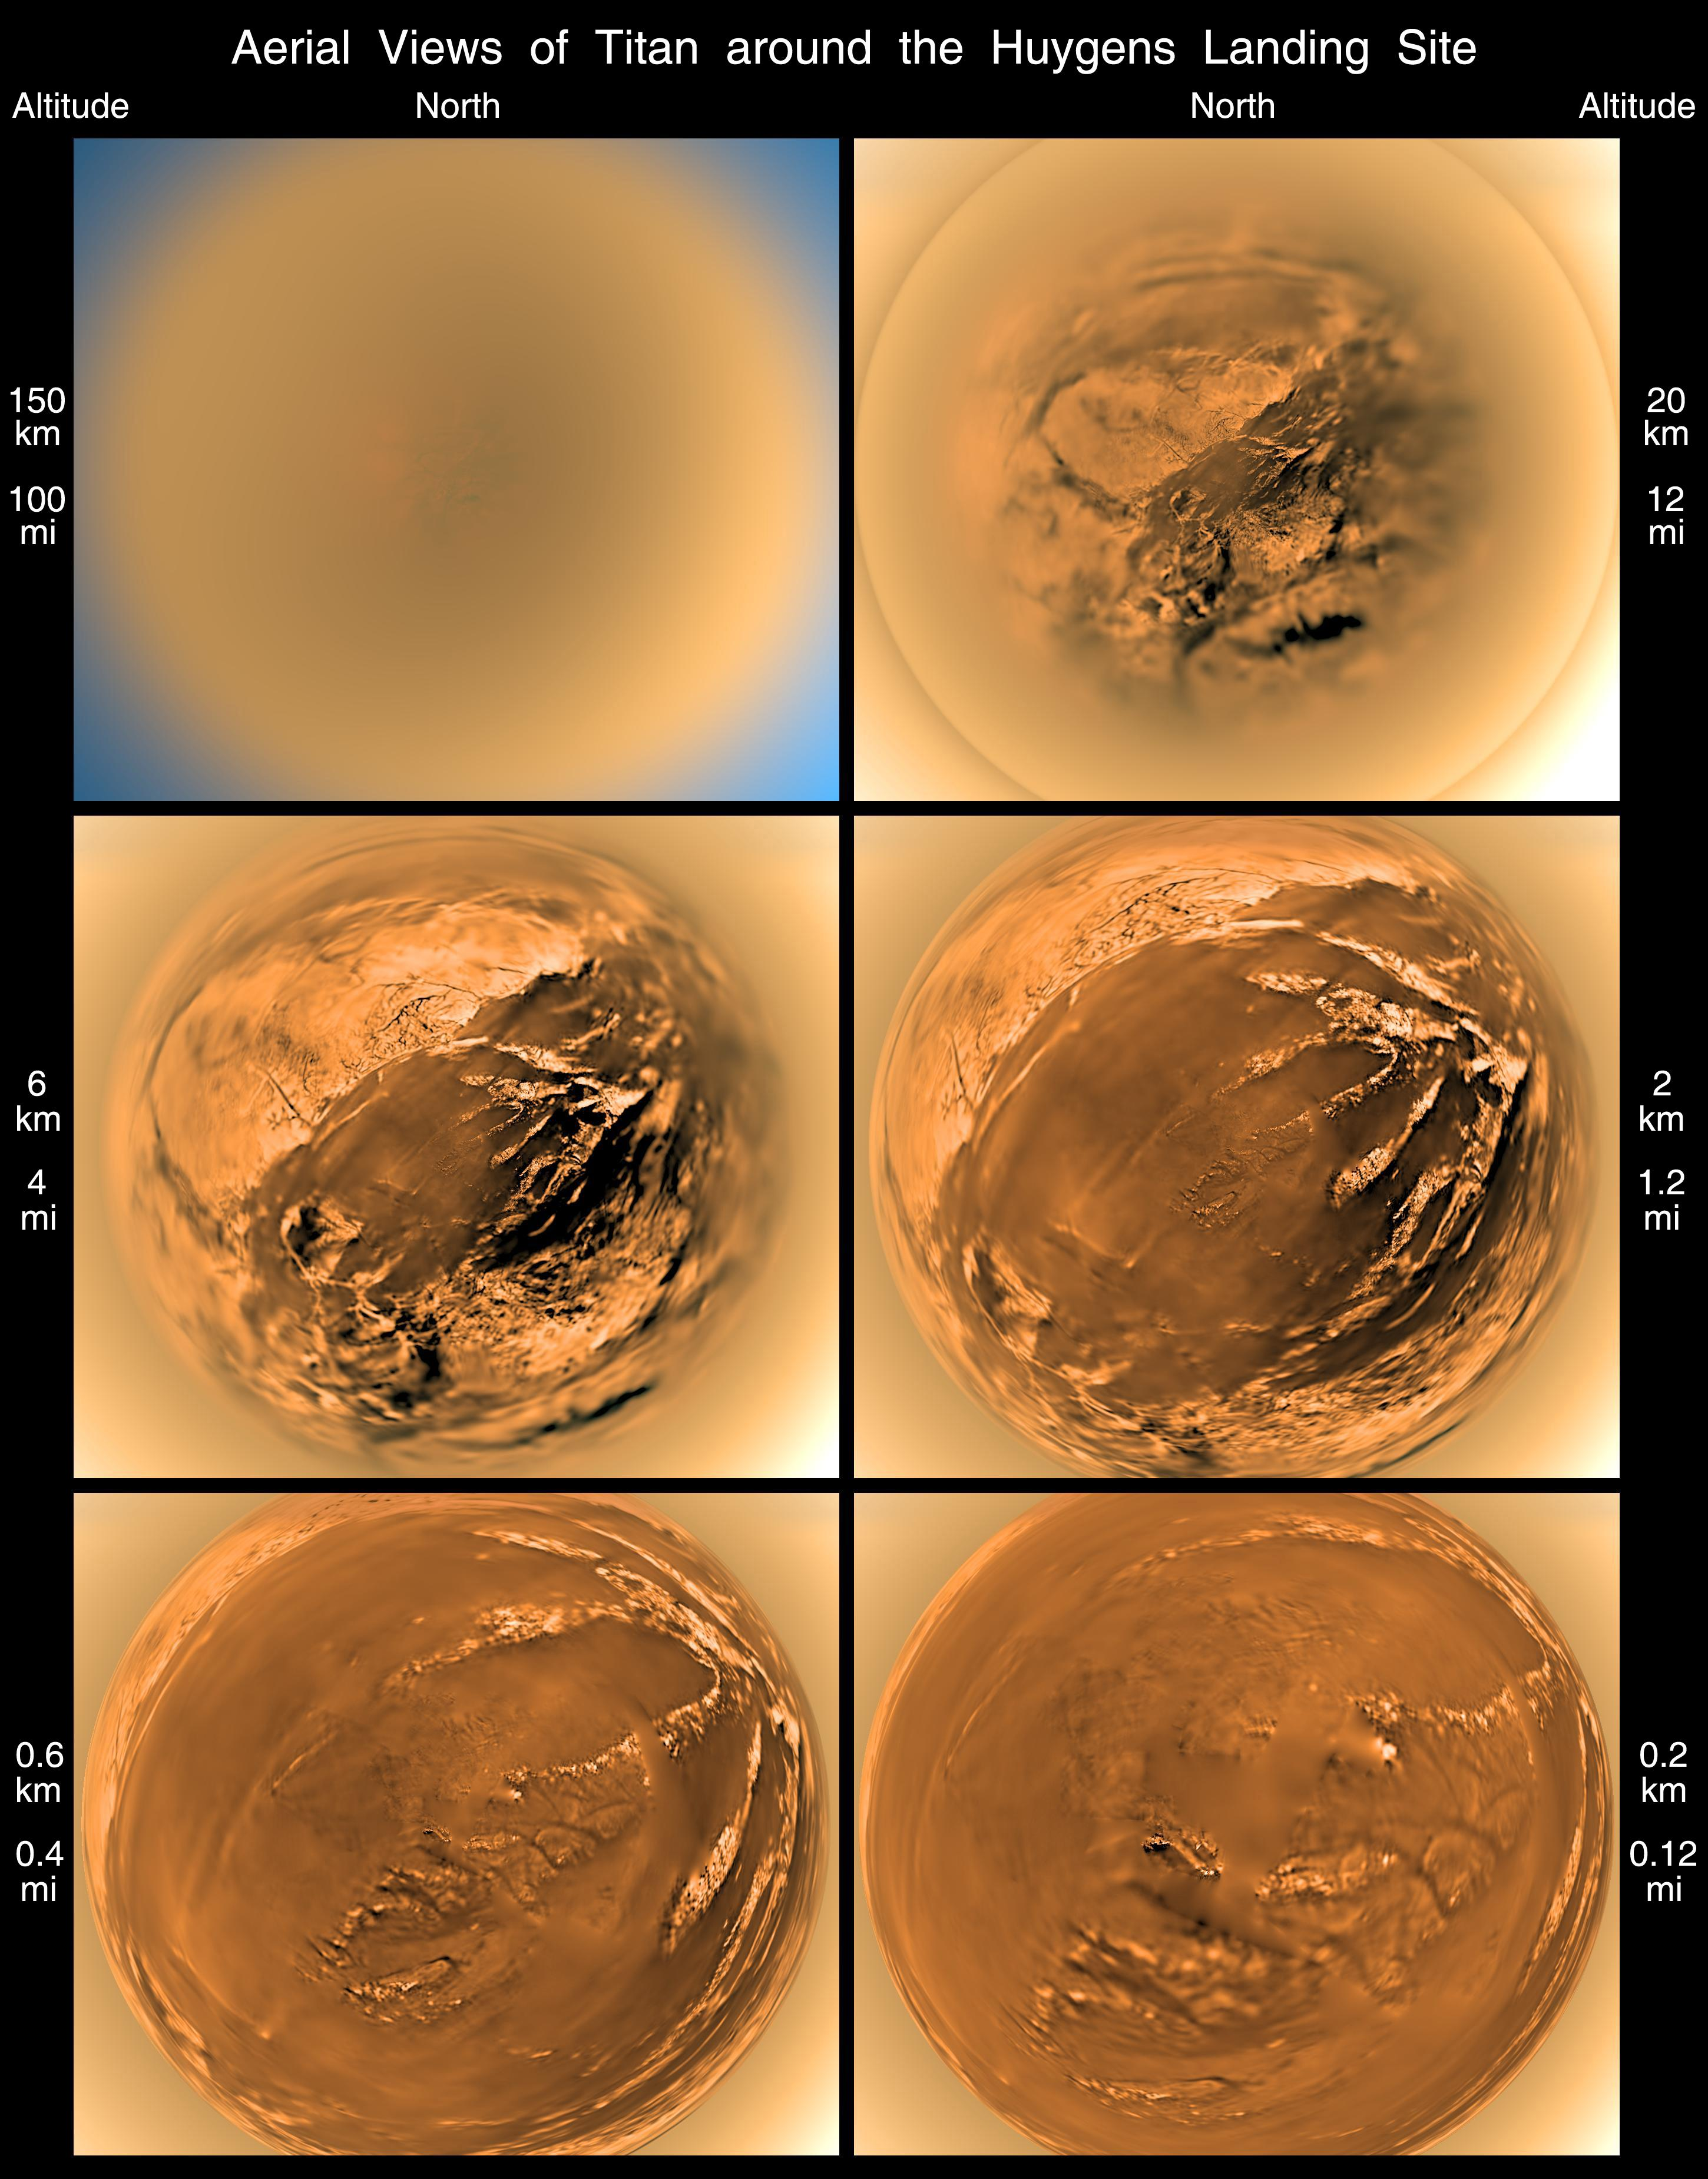 This poster shows a stereographic (fish-eye) view of Titan's surface from six different altitudes